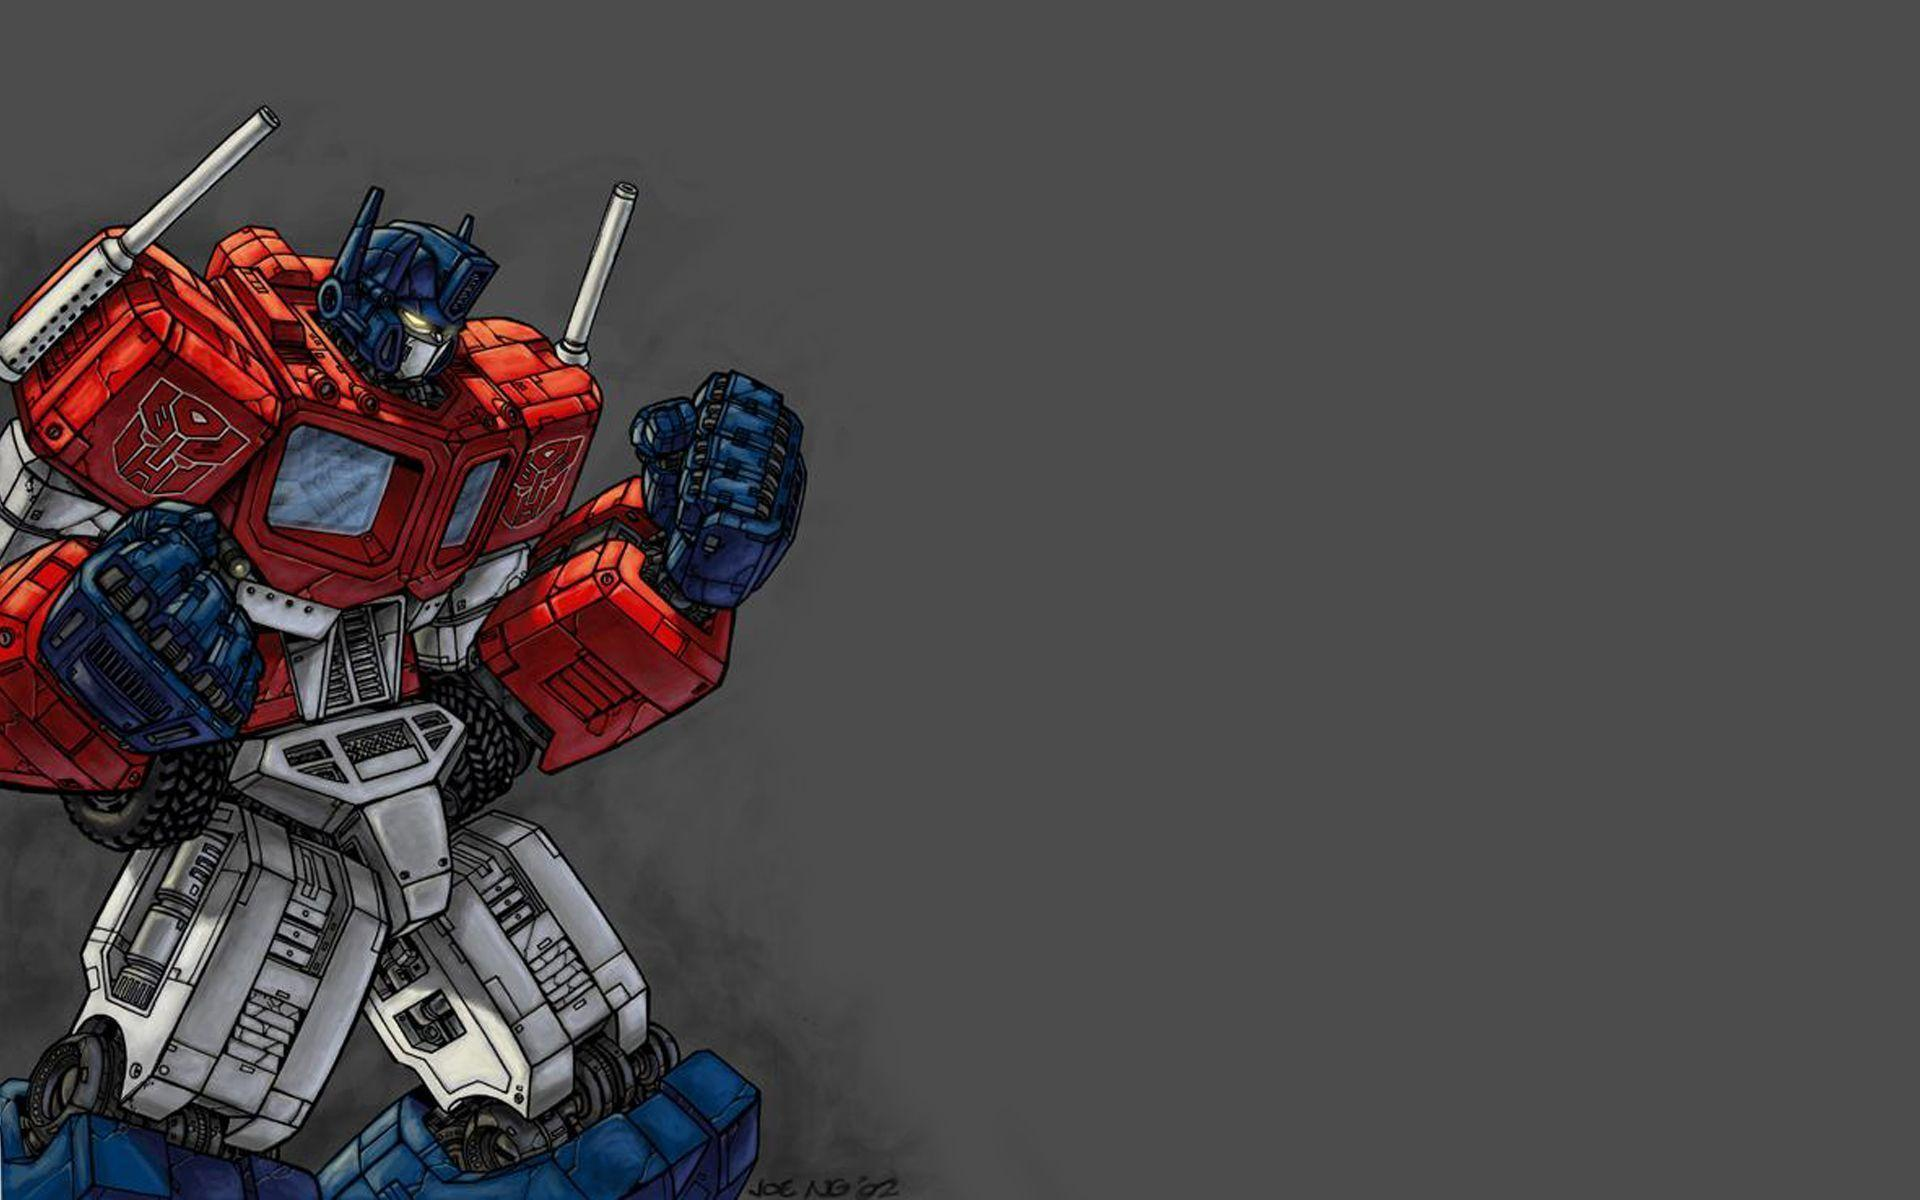 Optimus Prime 2016 Wallpapers - Wallpaper Cave